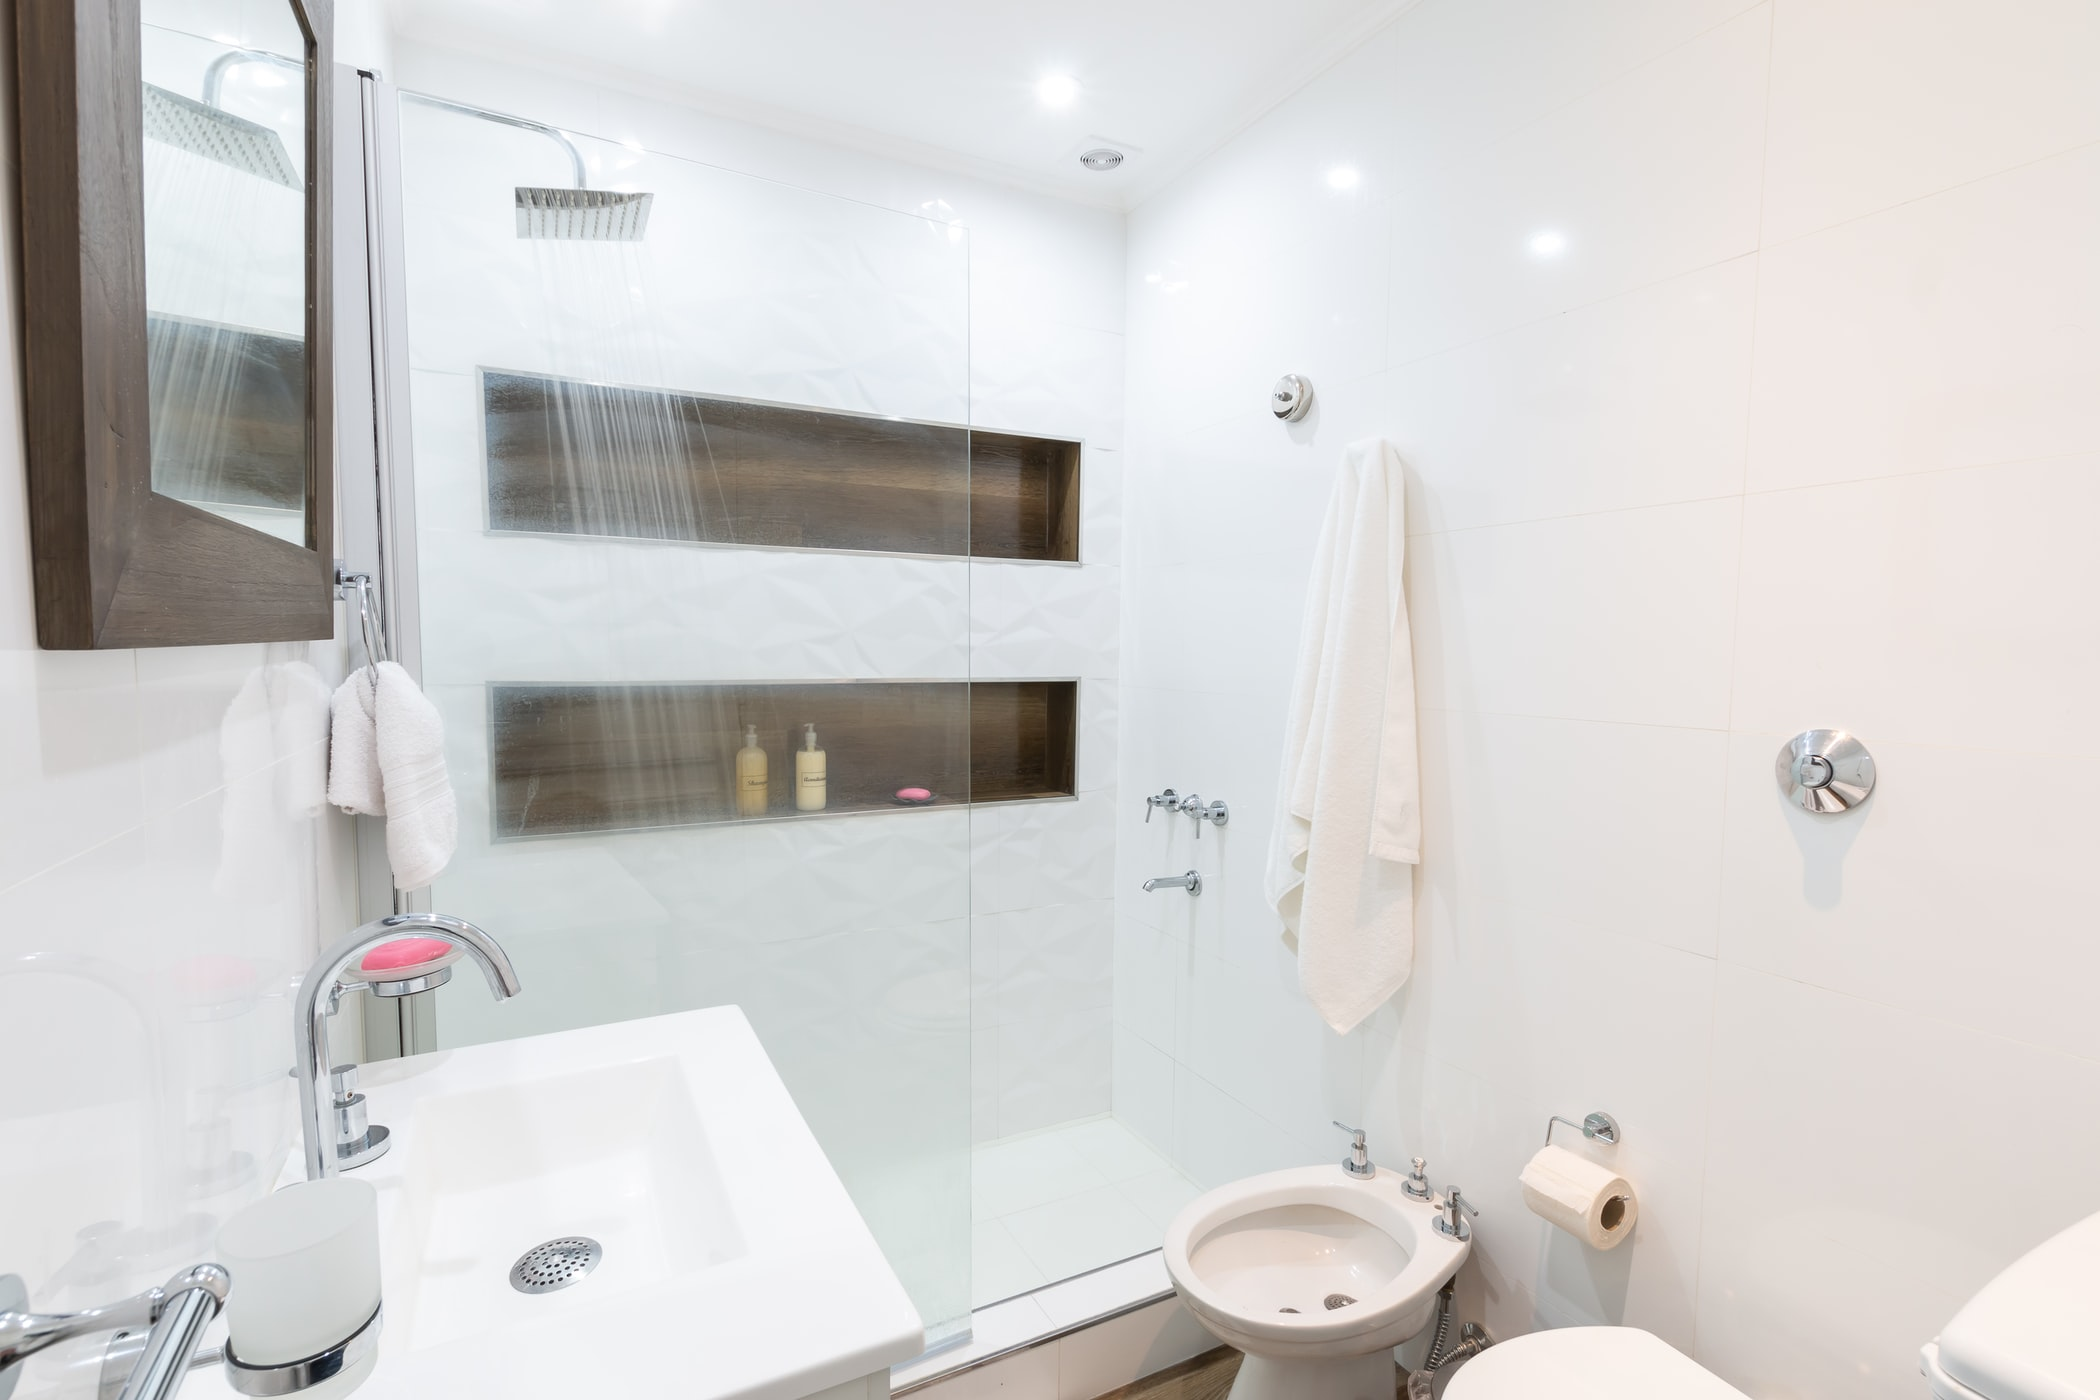 Hot Showers with Hot Water Tank Installation and Replacement